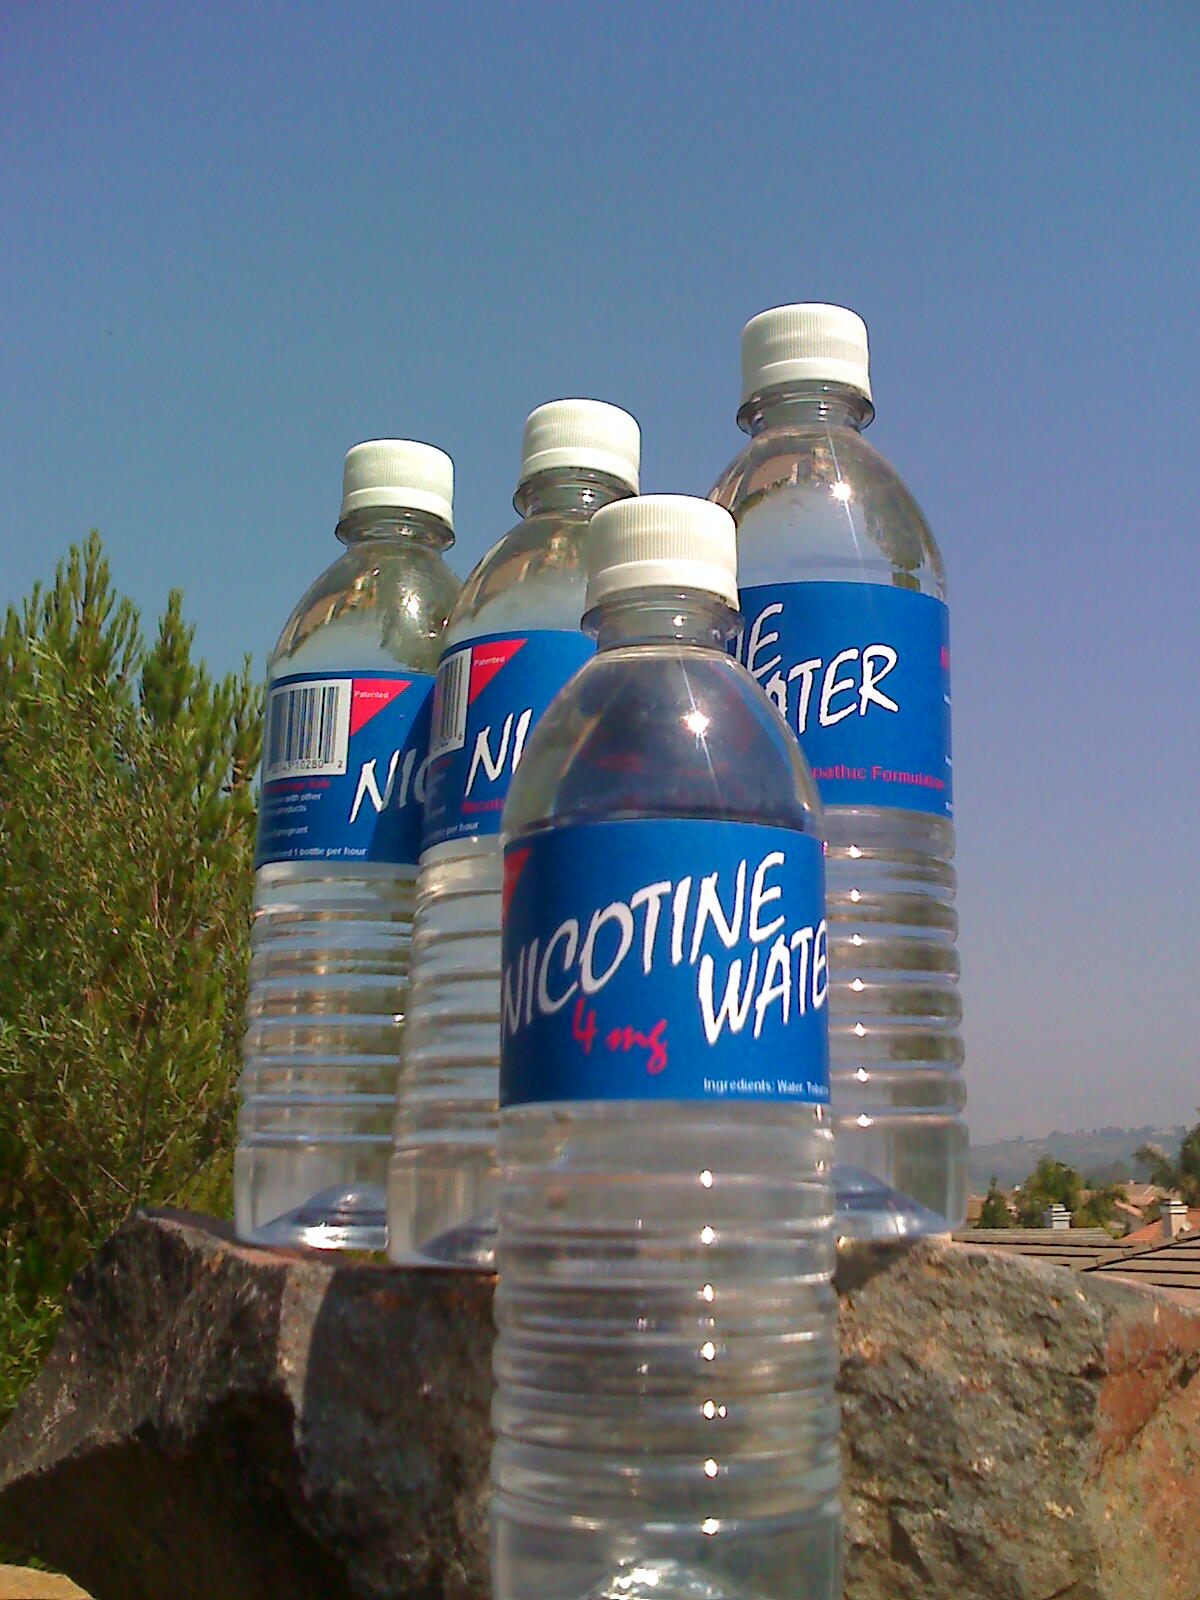 """Nautilus Launches """"Nicotine Water"""" - A New Smoking Cessation H2O"""